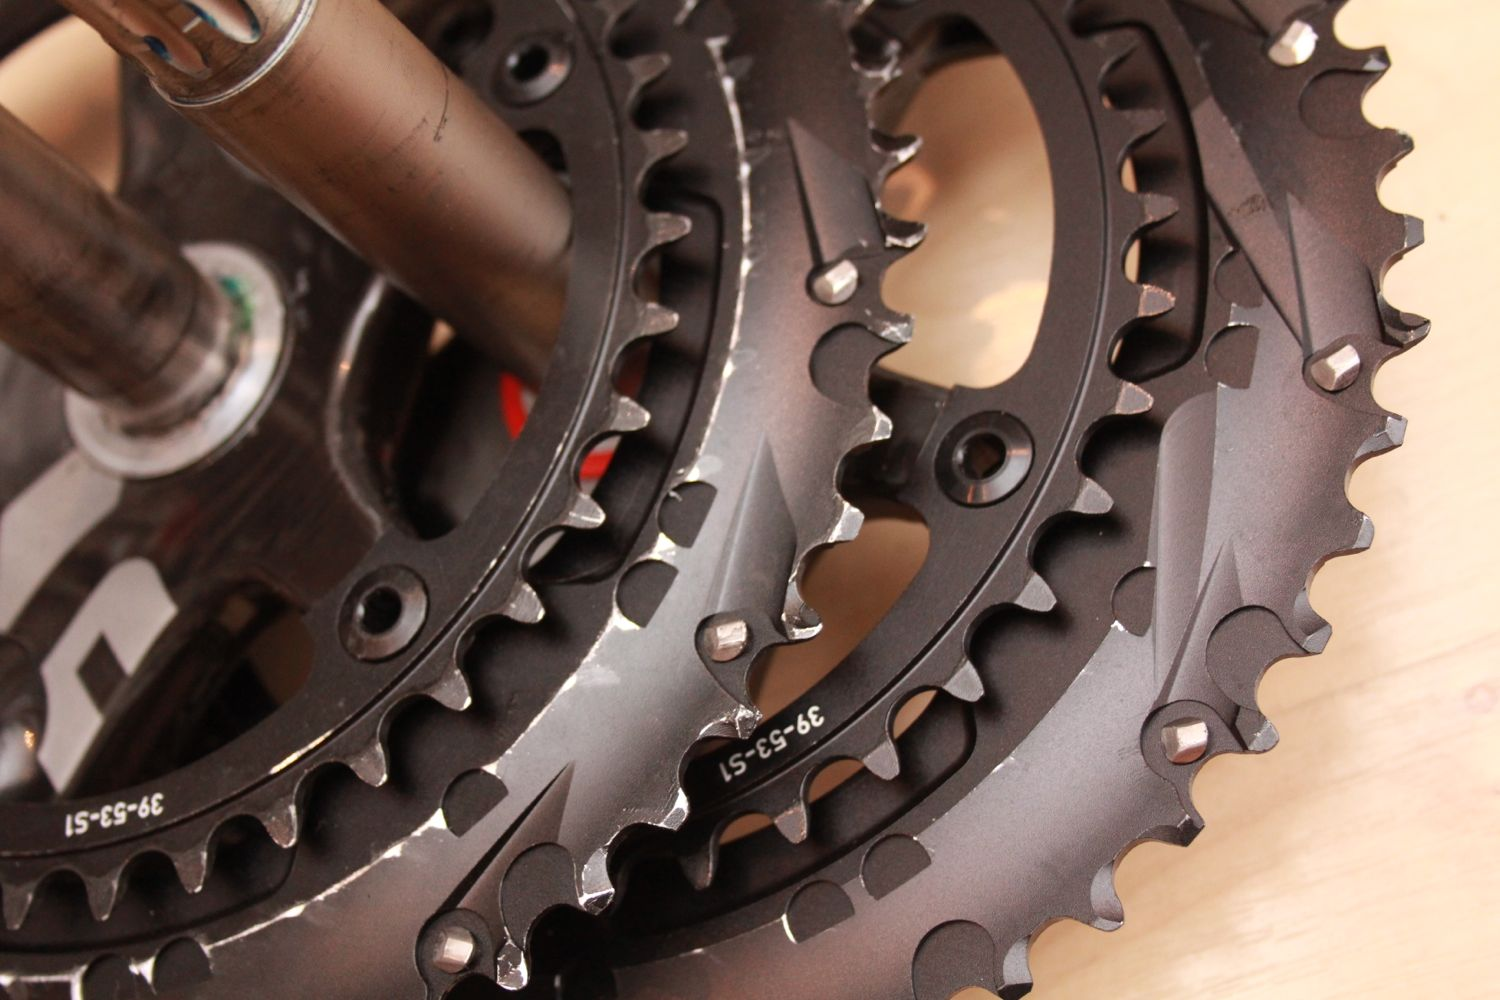 SRAM Red regular and pre-production chainrings